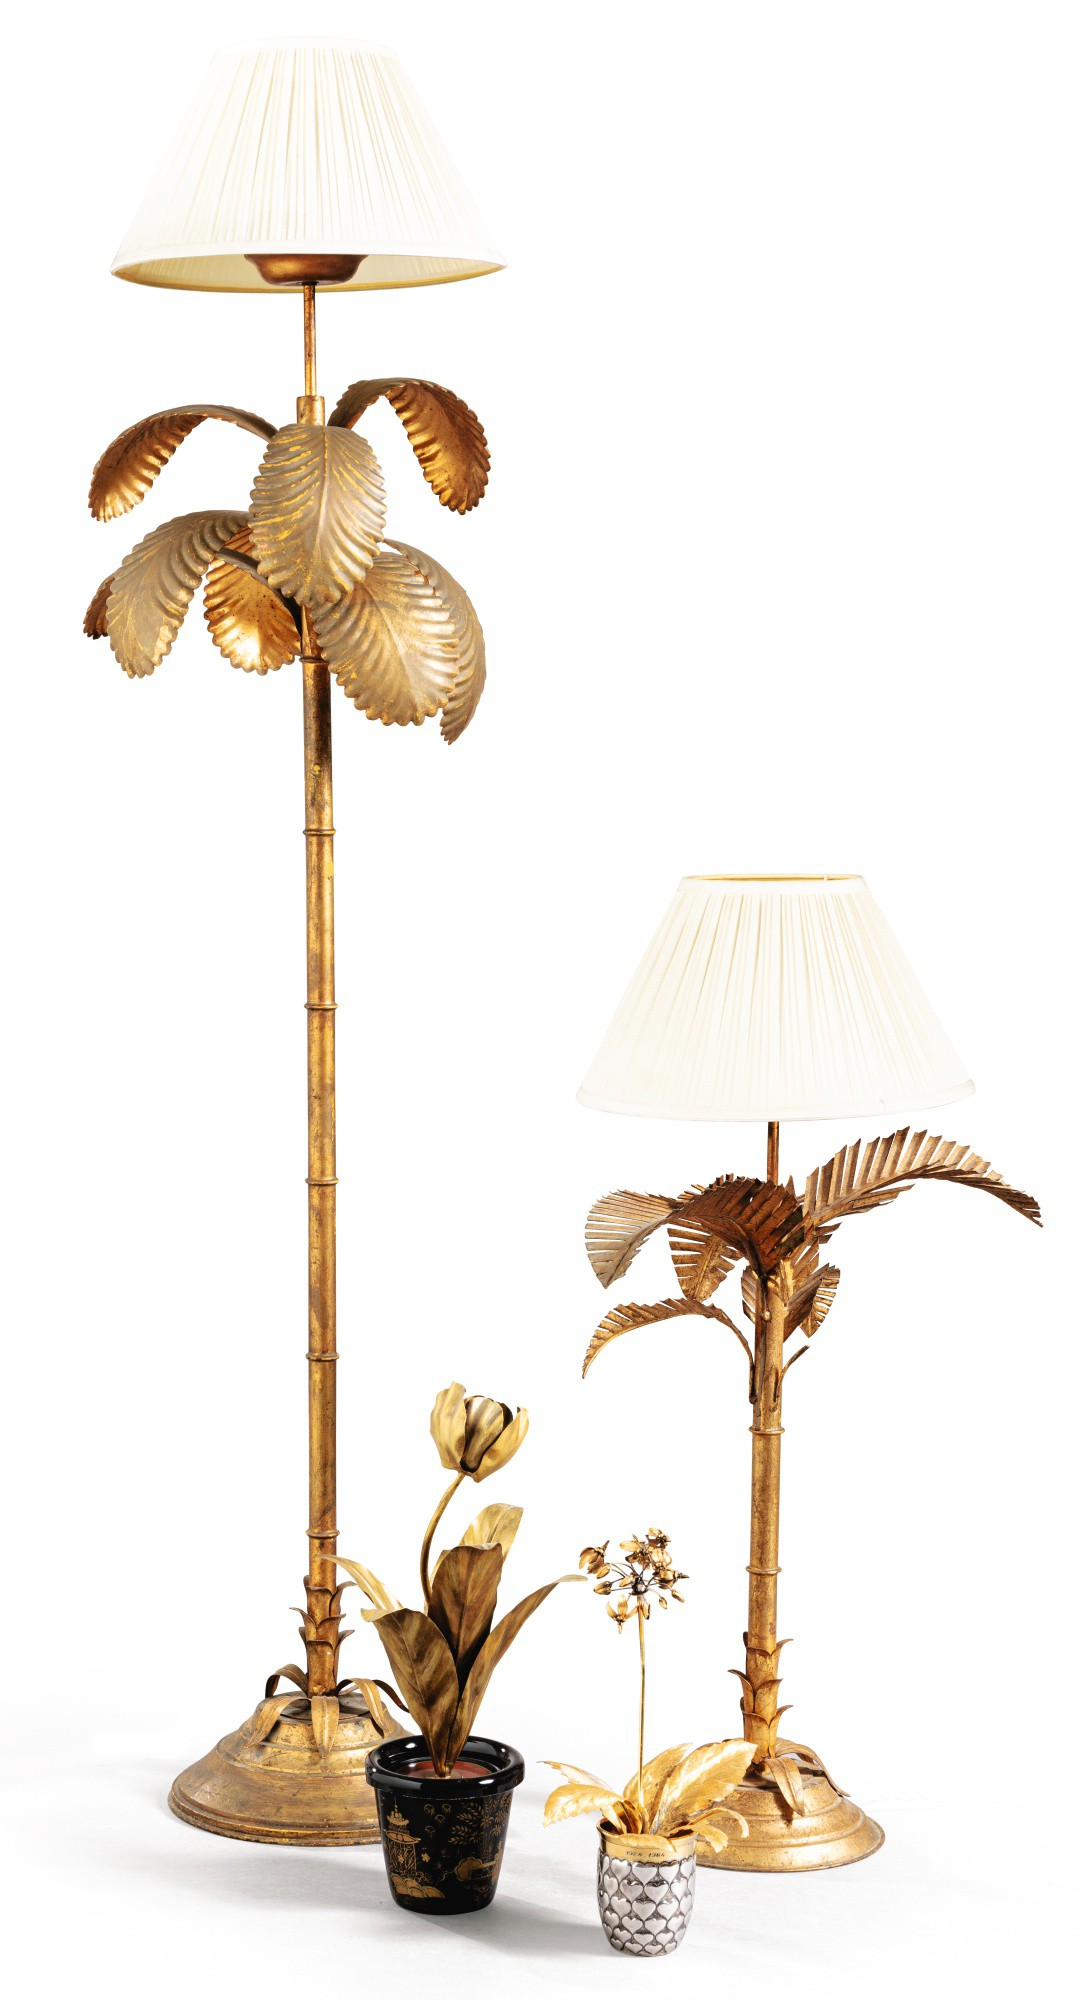 Modern School 20th Century A Palm Tree Floor Lamp And A Lamp The French Touch Hommage à Alain Et Catherine Bernard Sotheby S